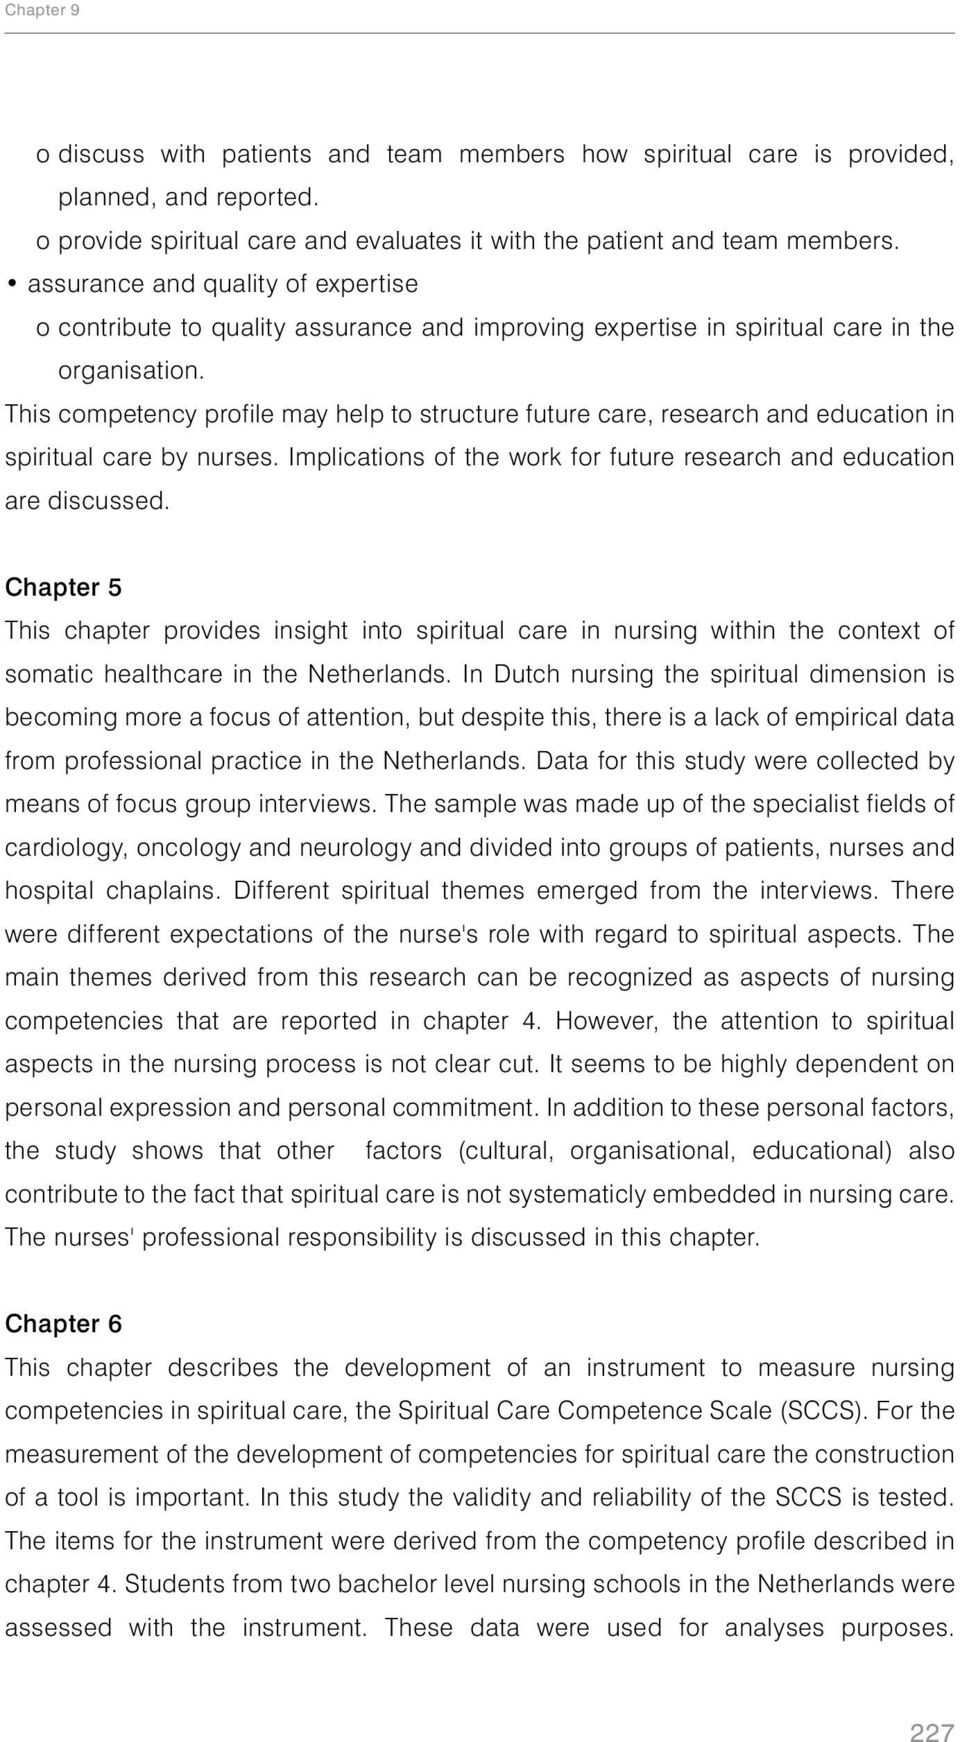 This competency profile may help to structure future care, research and education in spiritual care by nurses. Implications of the work for future research and education are discussed.